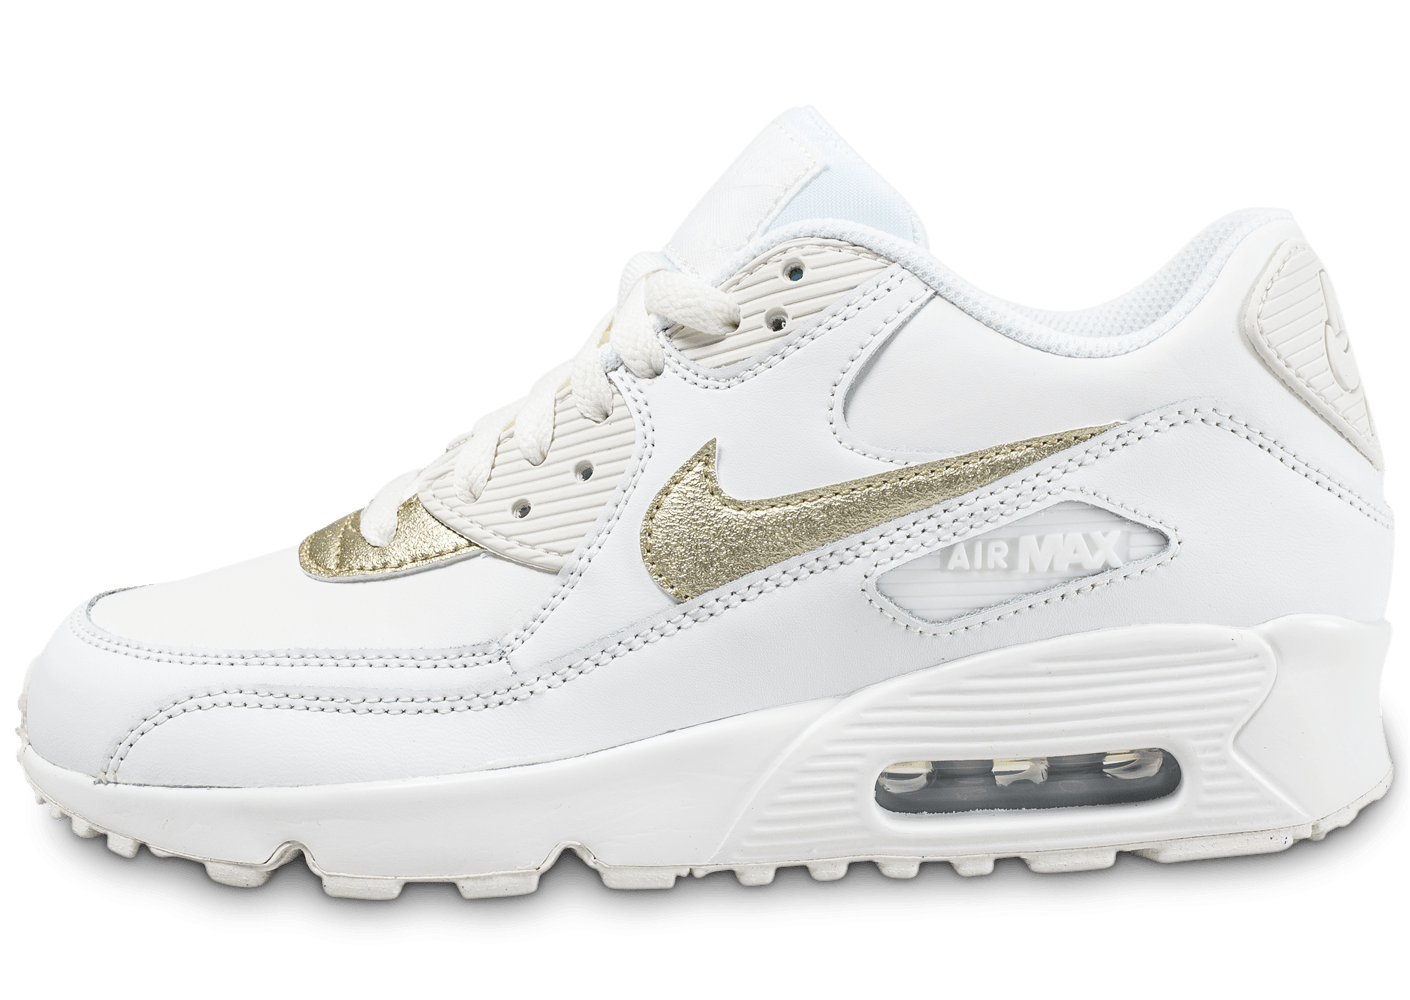 buy online 9bd70 4d63d Nike Air Max 90 Leather Junior blanche et or - Chaussures Baskets femme -  Chausport